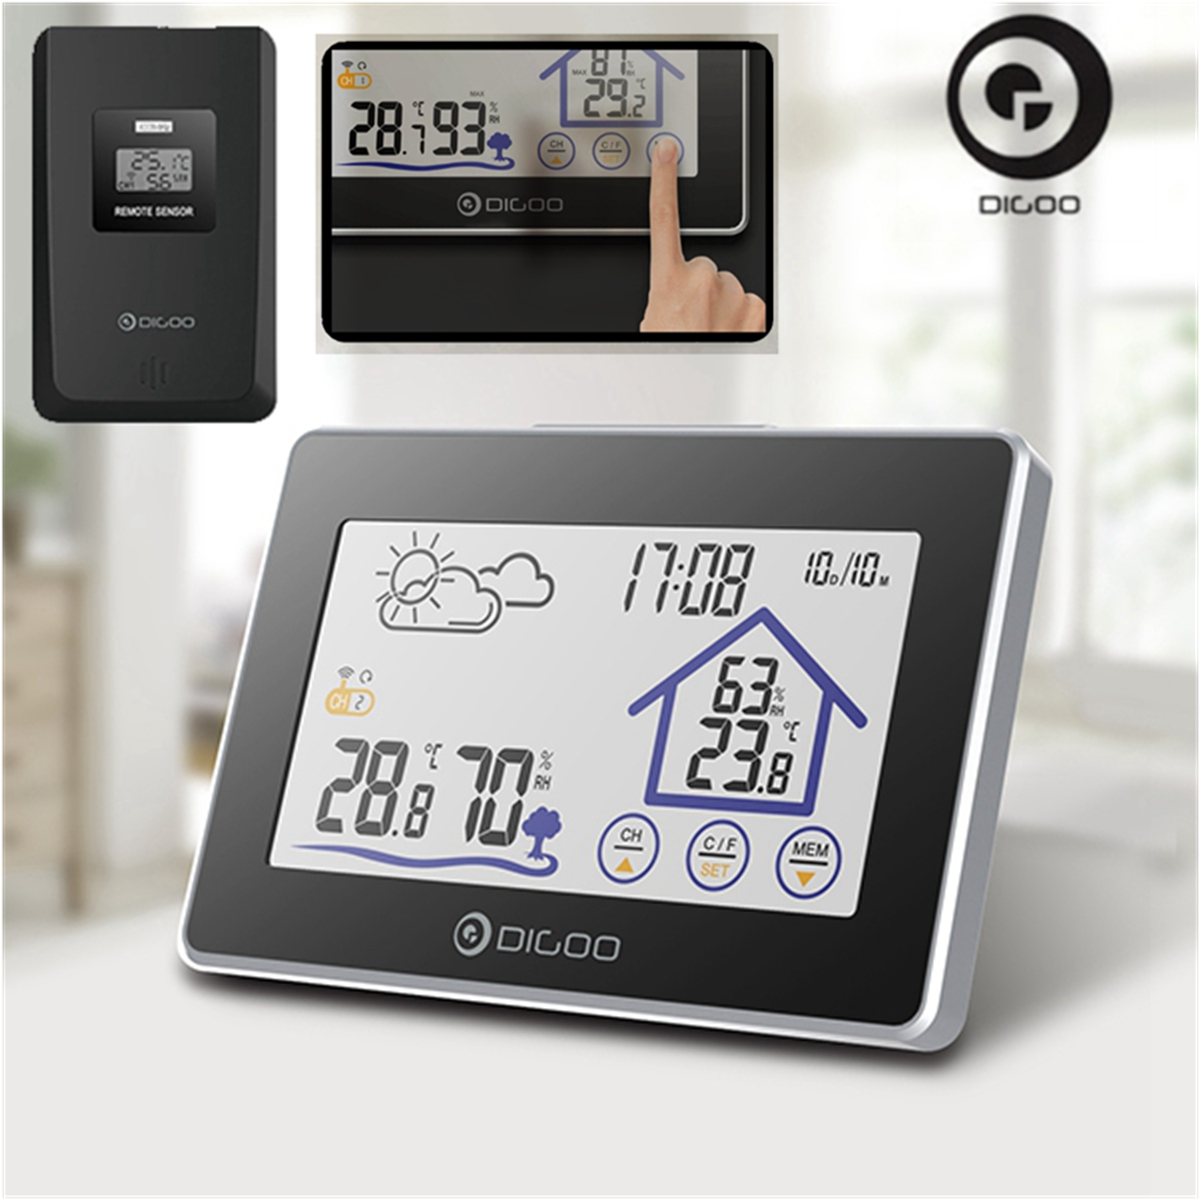 DIGOO Touch Screen Indoor Outdoor Weather Forecast Station for Home with Outdoor Sensor,12/24 Time & Calendar,Thermometer Hygrometer Clock